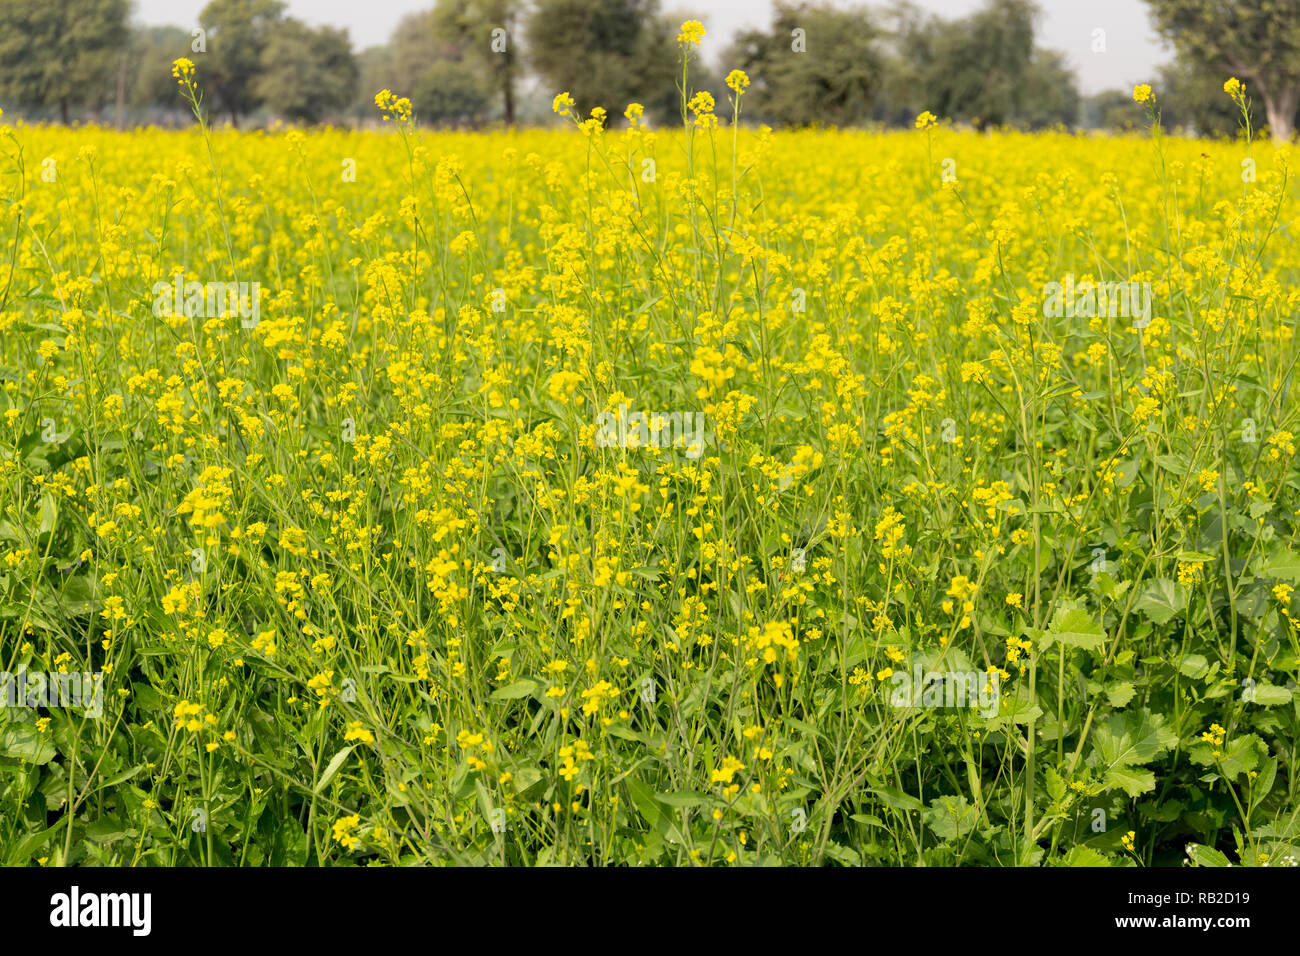 Background of mustard plants with beautiful yellow flowers field in Indian. - Stock Image